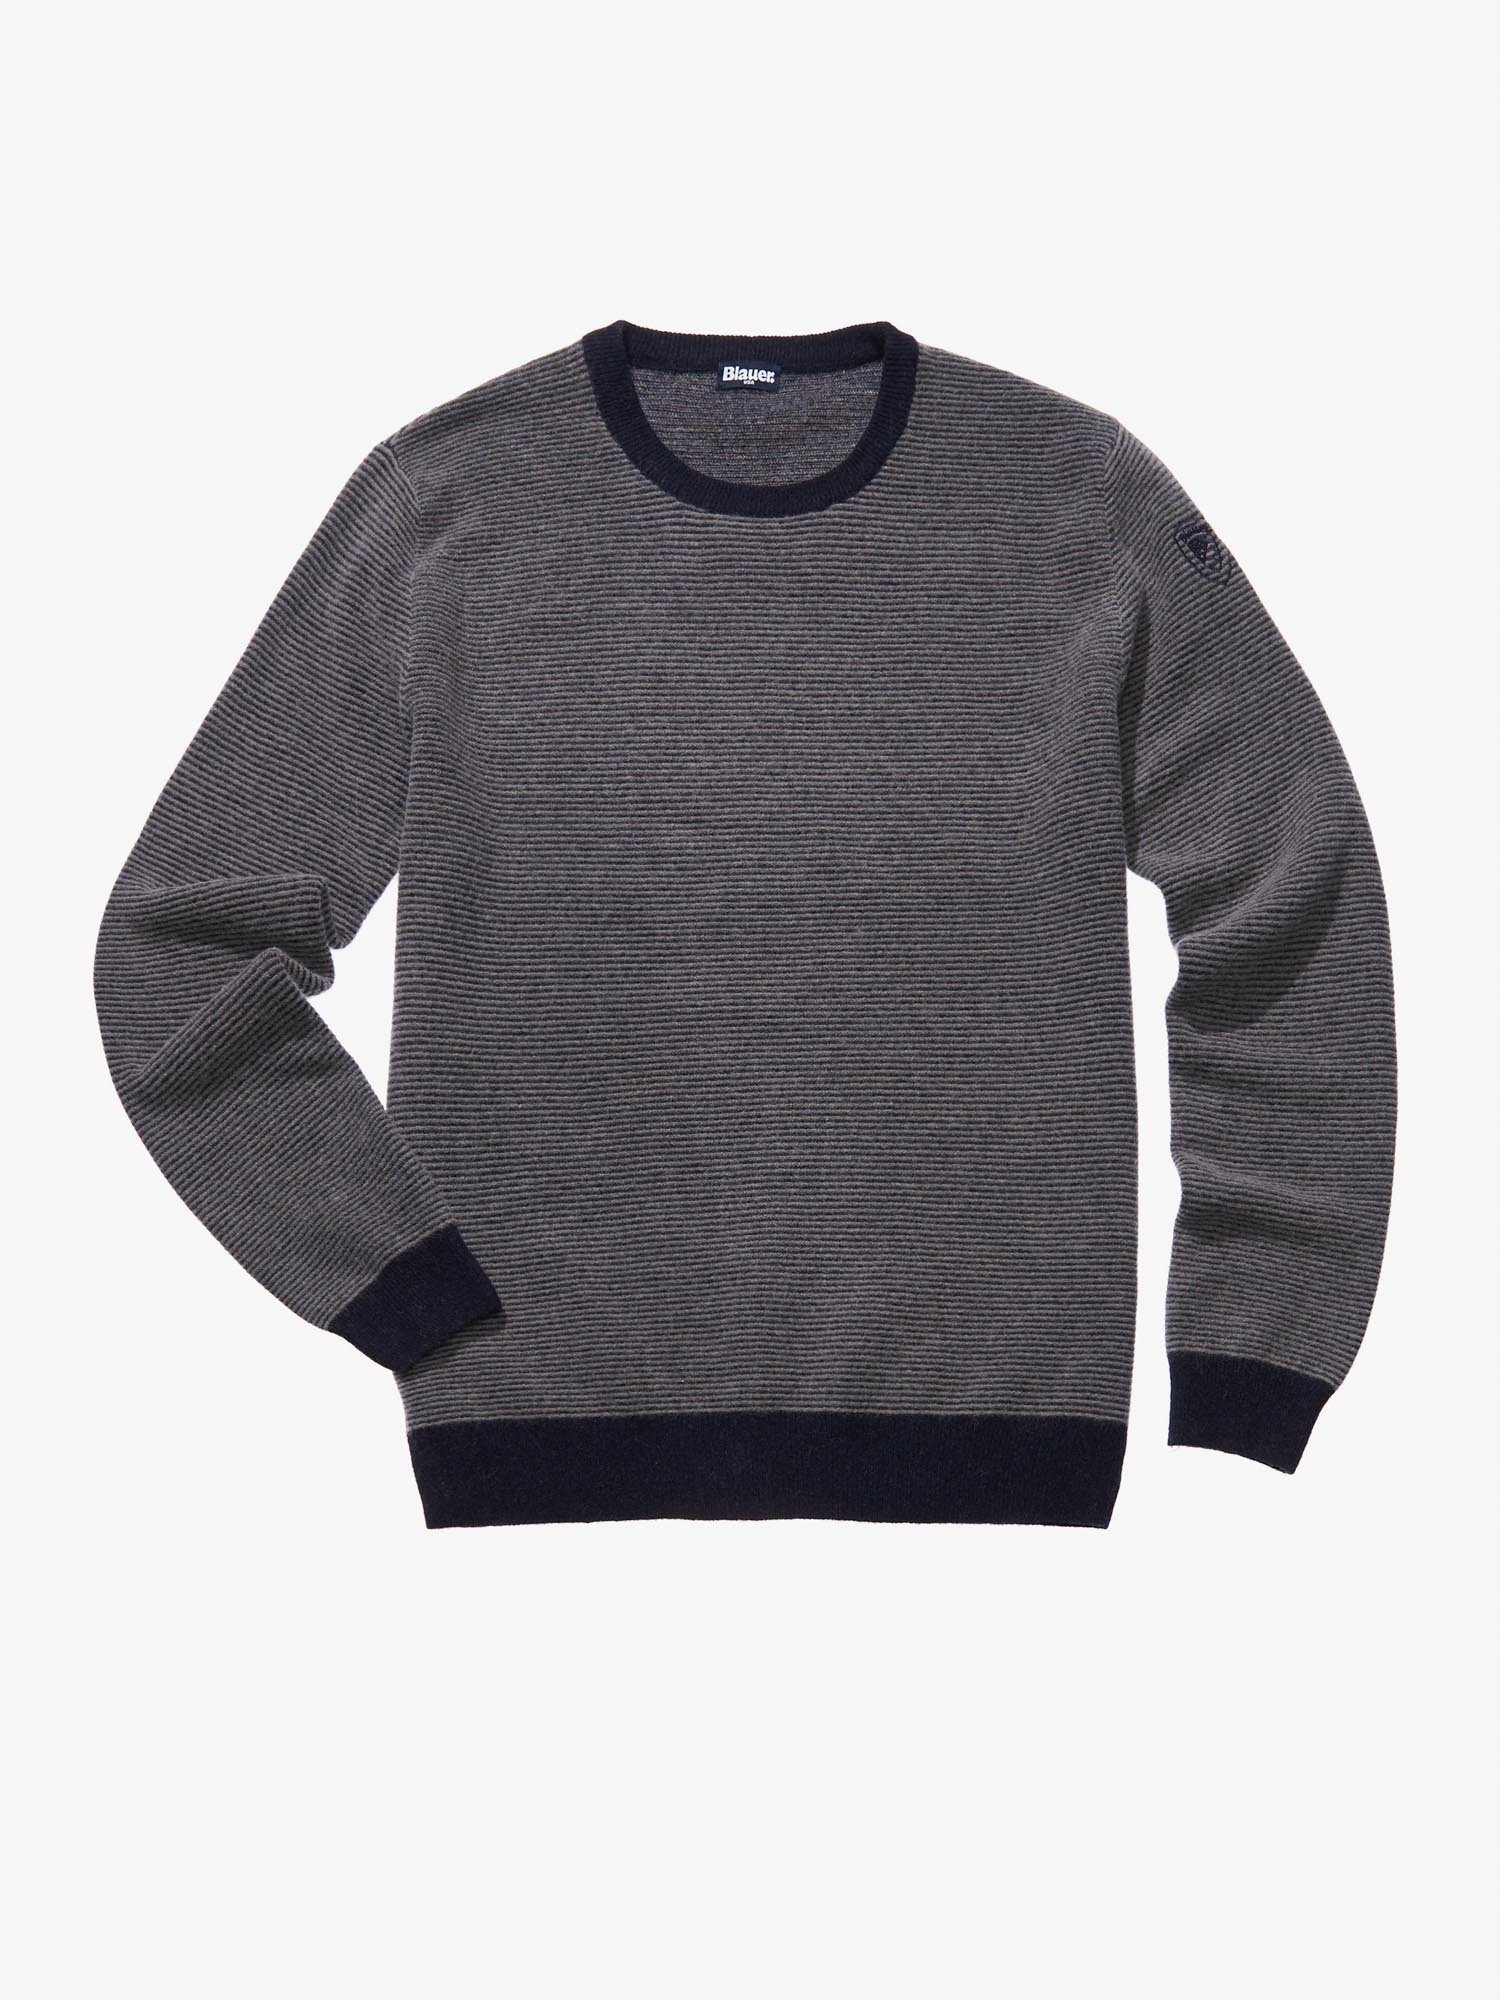 Blauer - WOOL-BLEND STOCKING STITCH SWEATER - Granite Grey - Blauer